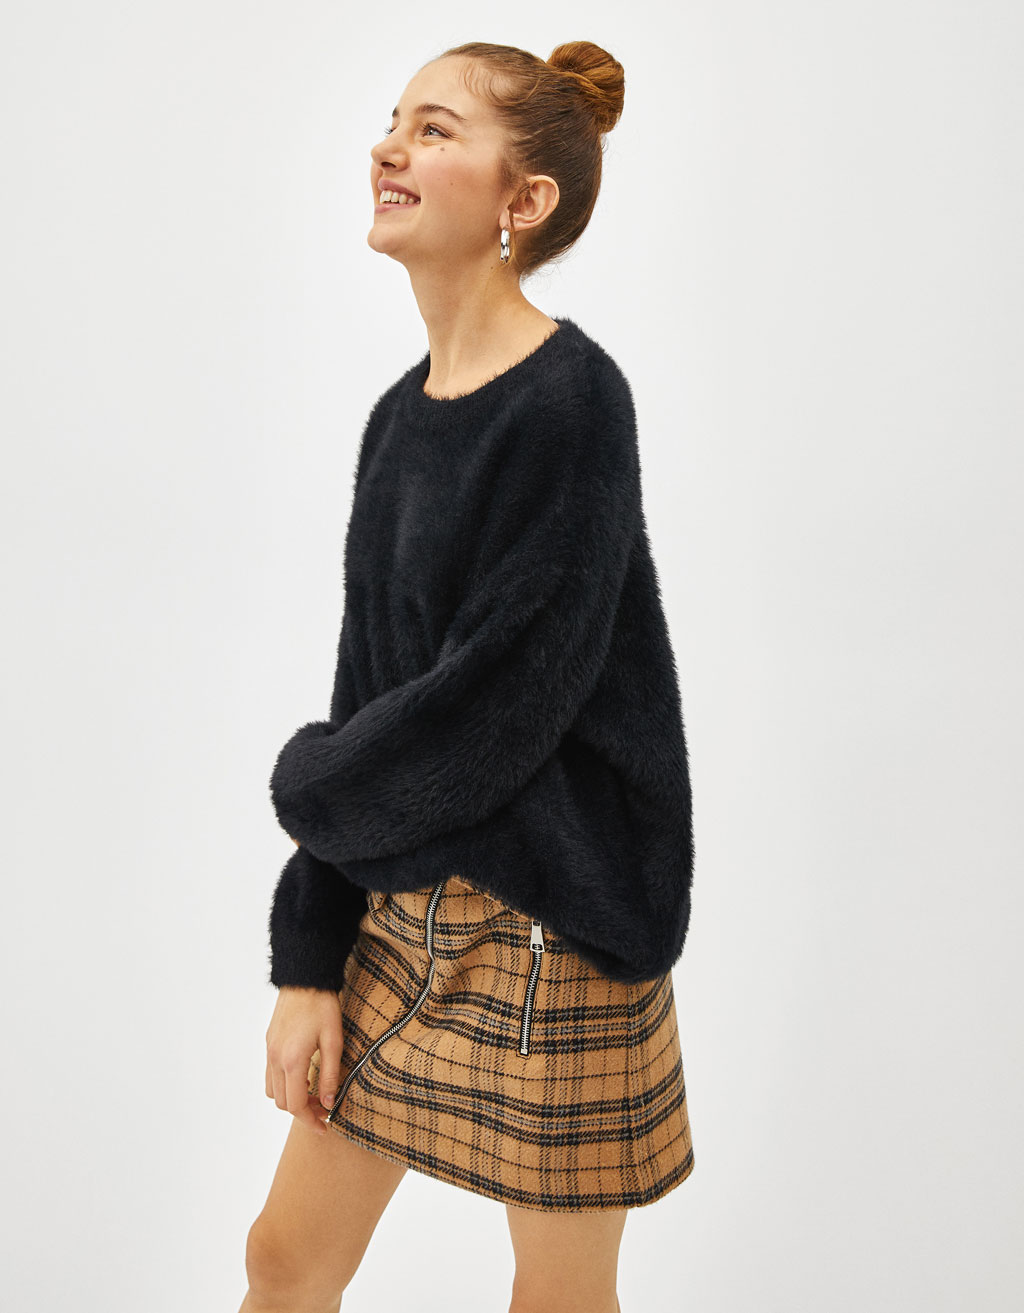 Oversized fuzzy sweater